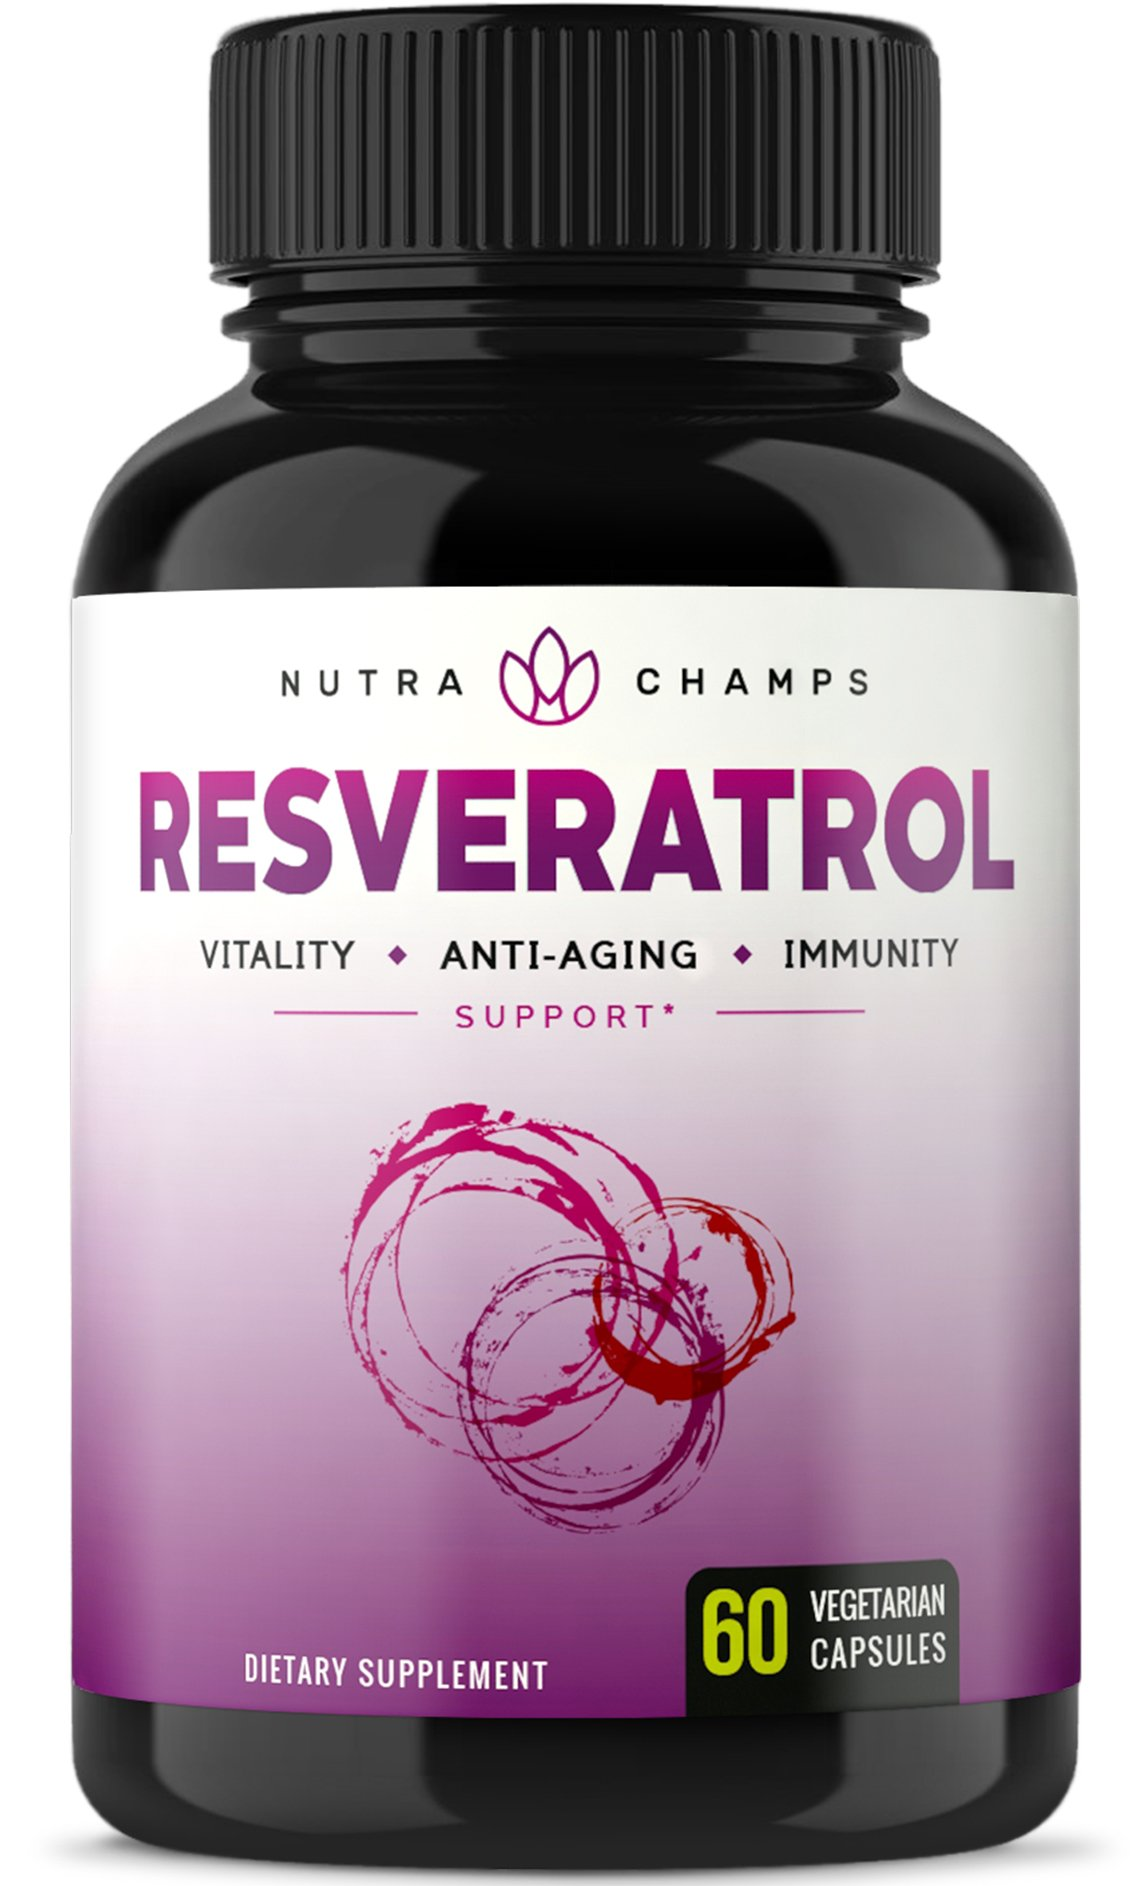 Resveratrol Supplement 1200mg - Extra Strength Formula for Maximum Anti Aging, Immune & Heart Health - 60 Vegan Capsules with Trans-Resveratrol, Green Tea Leaf, Acai Berry & Grape Seed Extract by NutraChamps